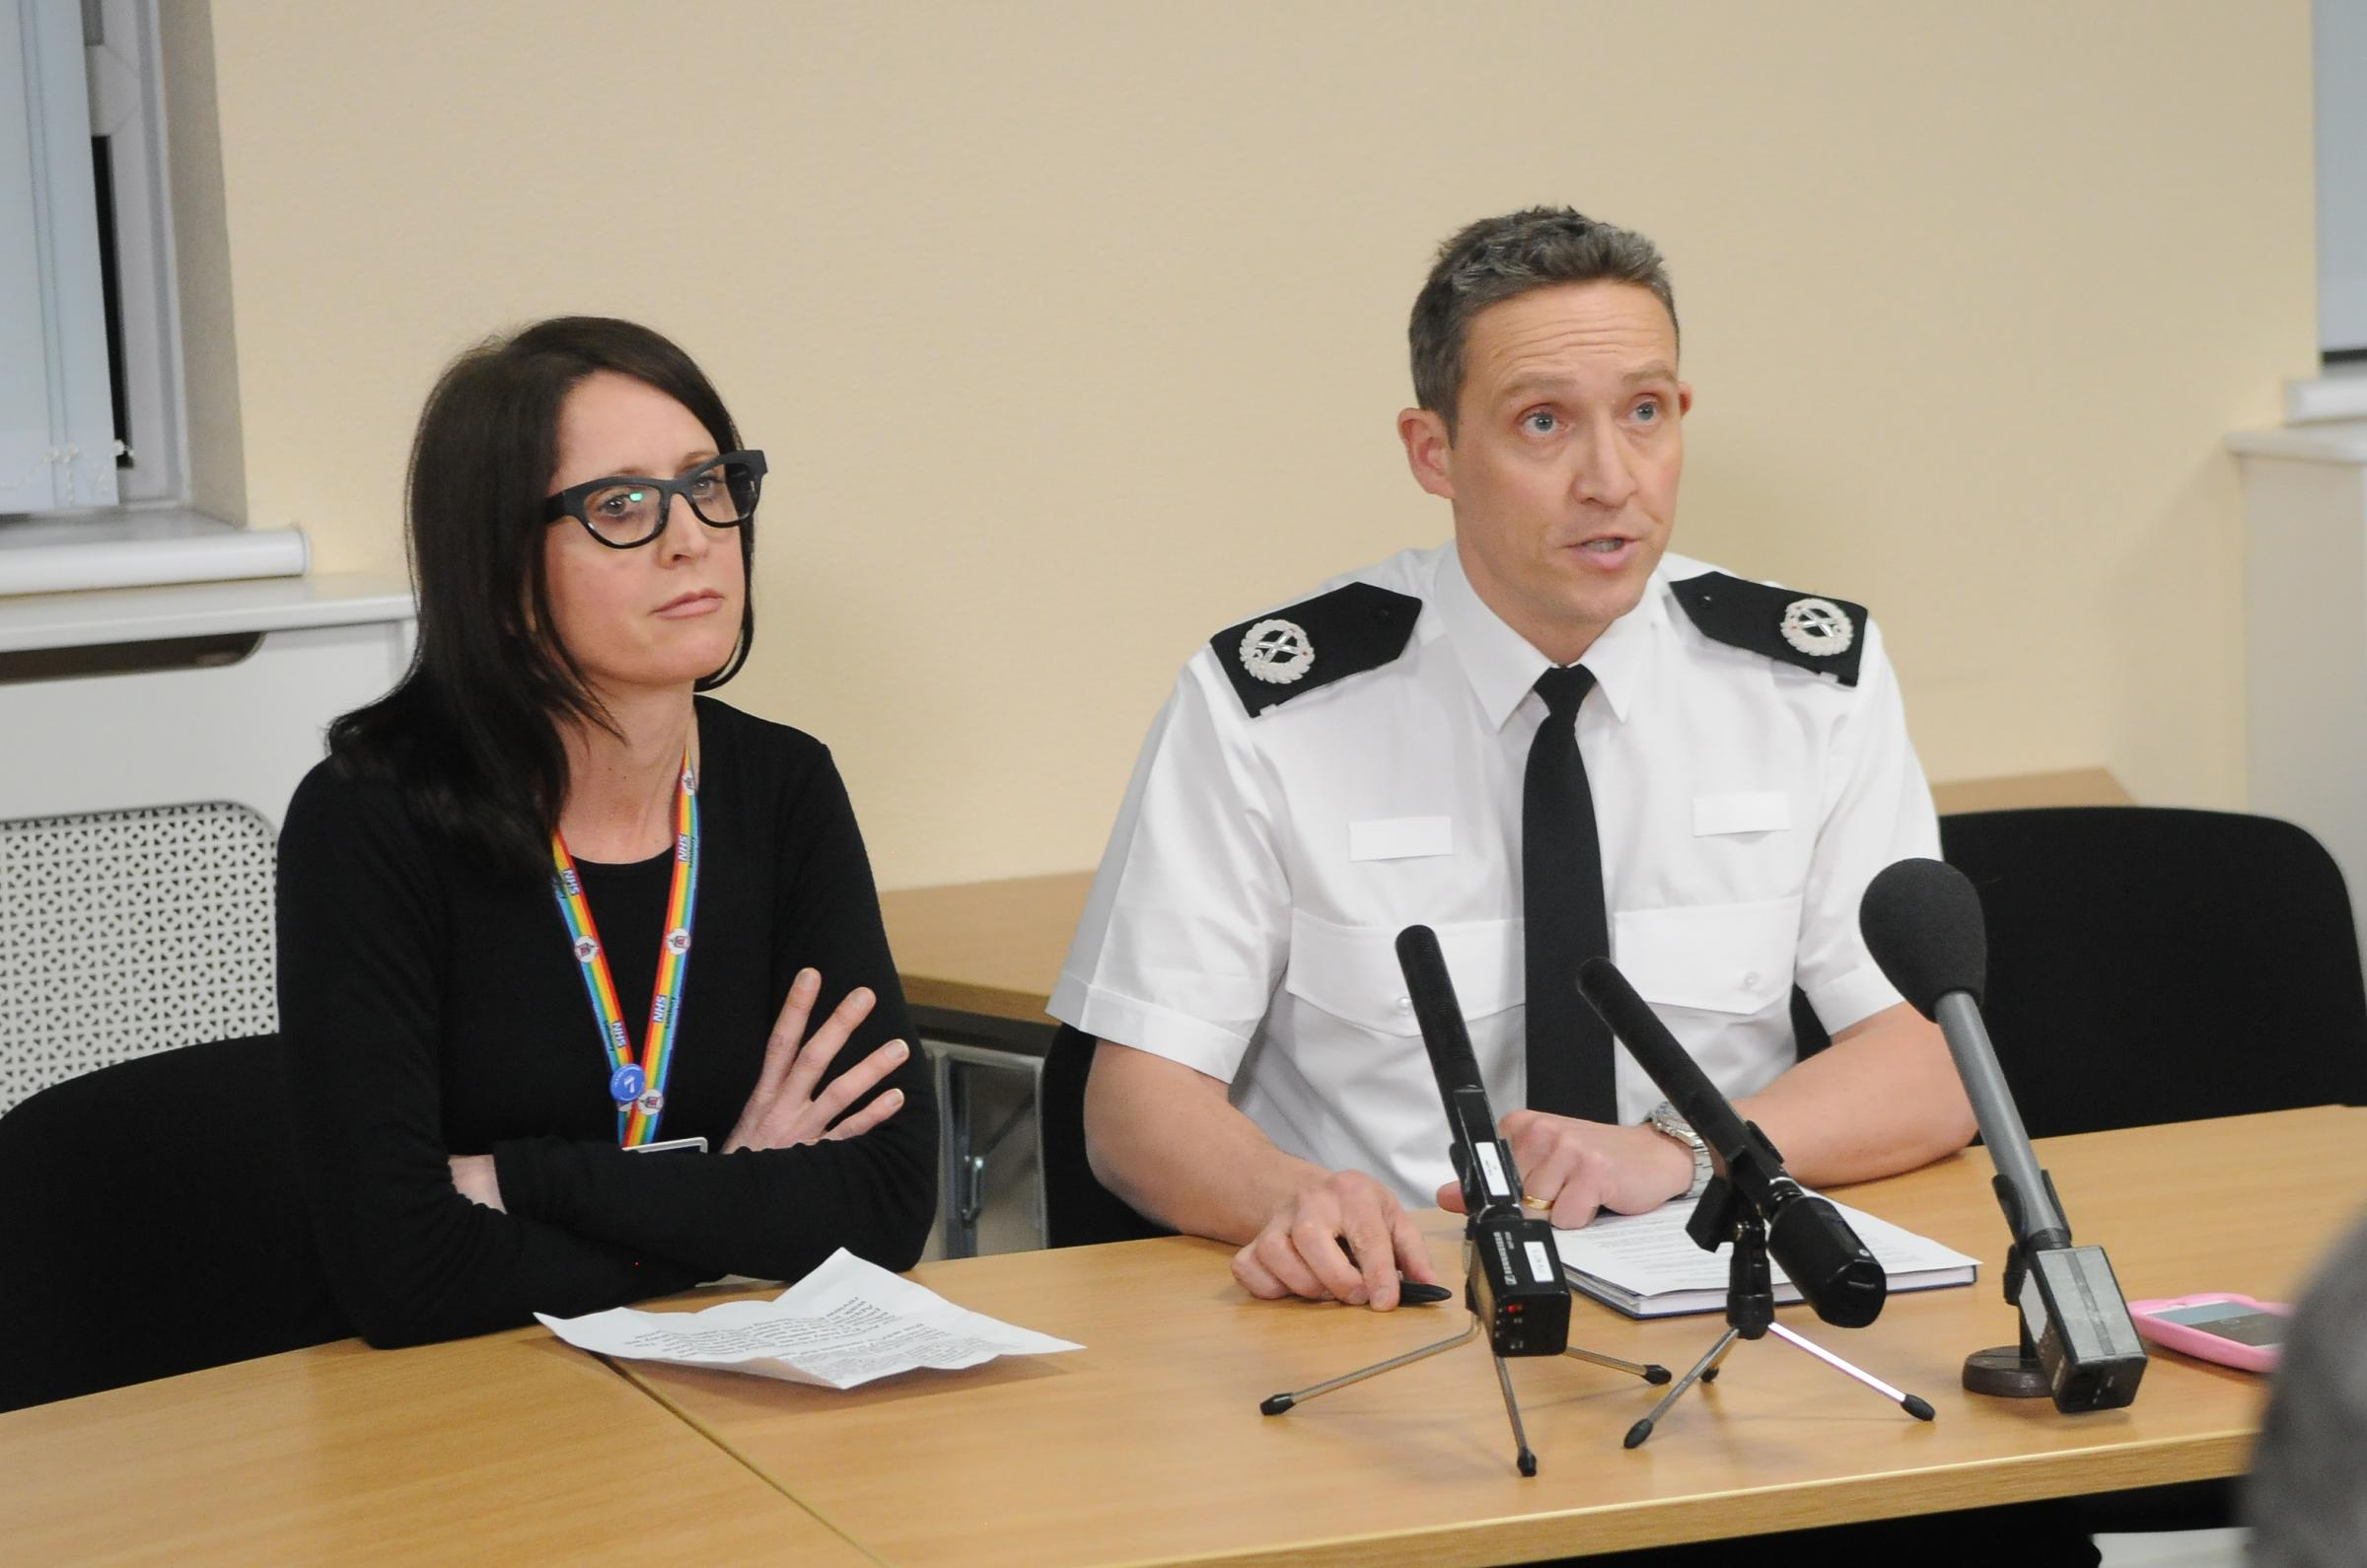 Hospital Chief Executive Cara Charles-Barks and Temporary Assistant Chief Constable Craig Holden hold a press conference regarding the major incident in Salisbury